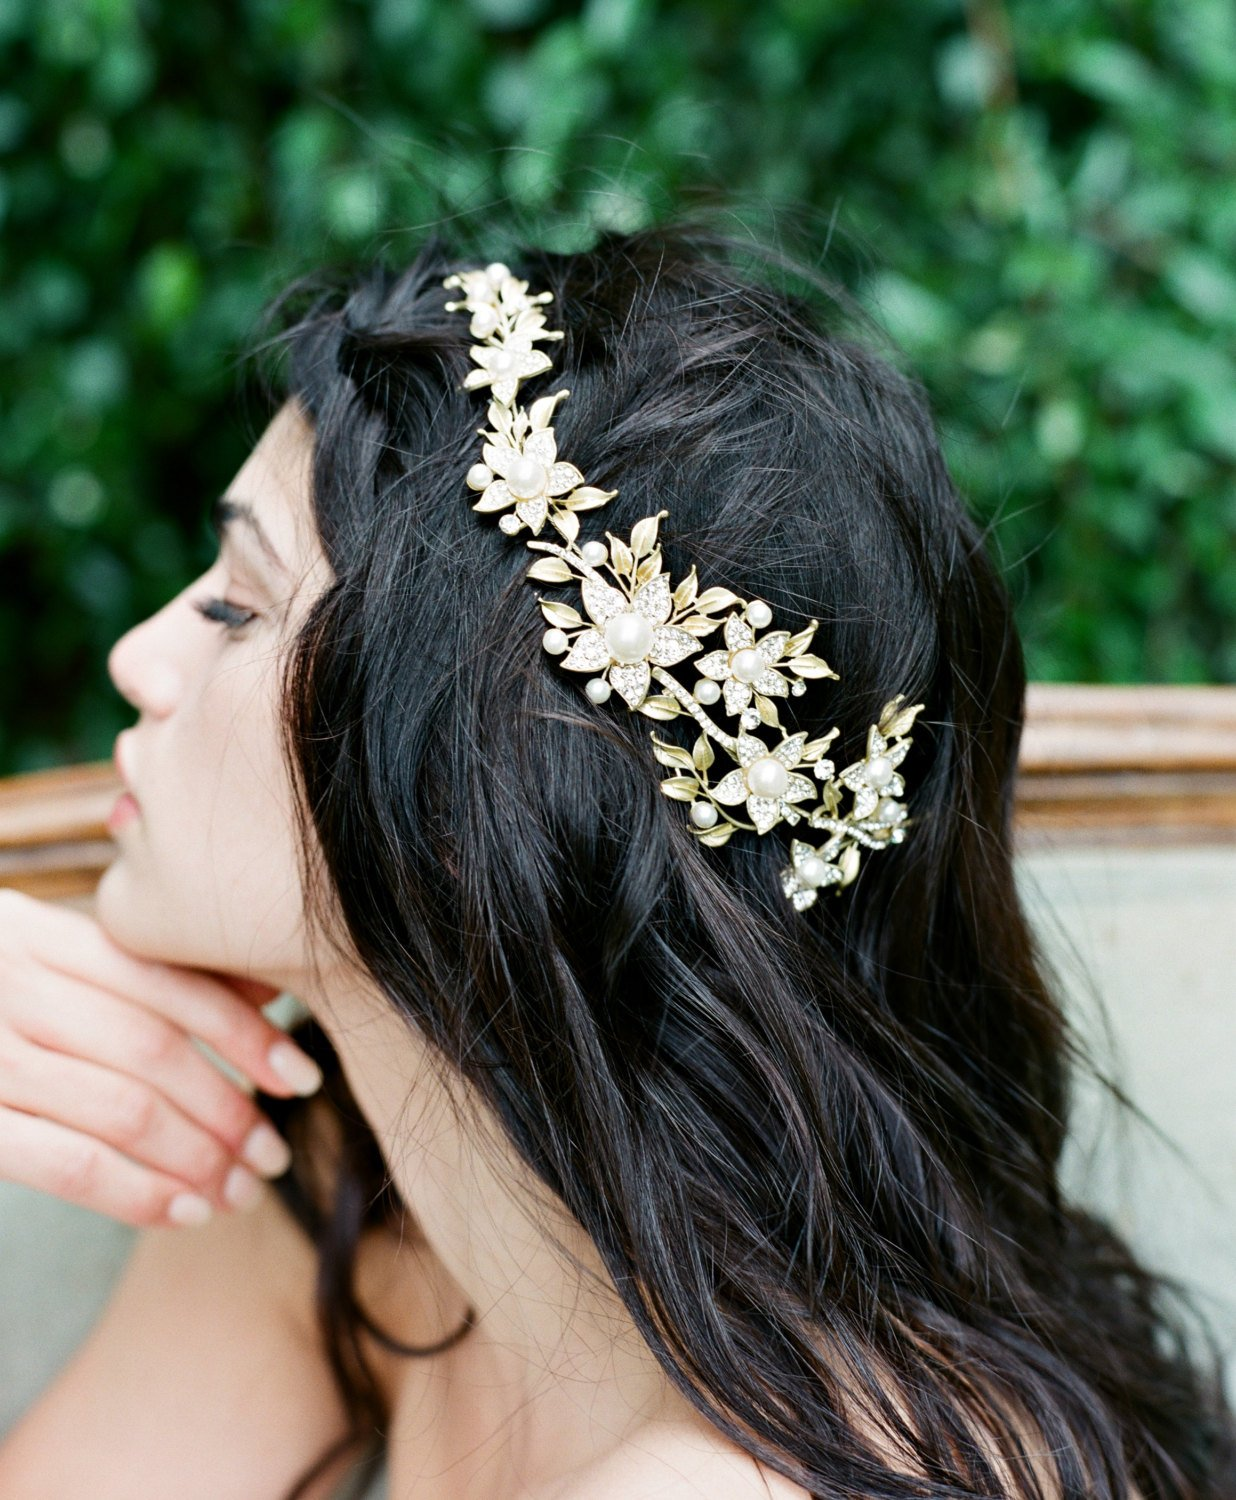 Gold Bridal Headpiece, AGNES Bridal Leaf Headpiece, Pearl Bridal Headpiece, Gold Leaf Halo, Gold Bridal Pearl Headpiece, Bridal Halo Tiara.jpg